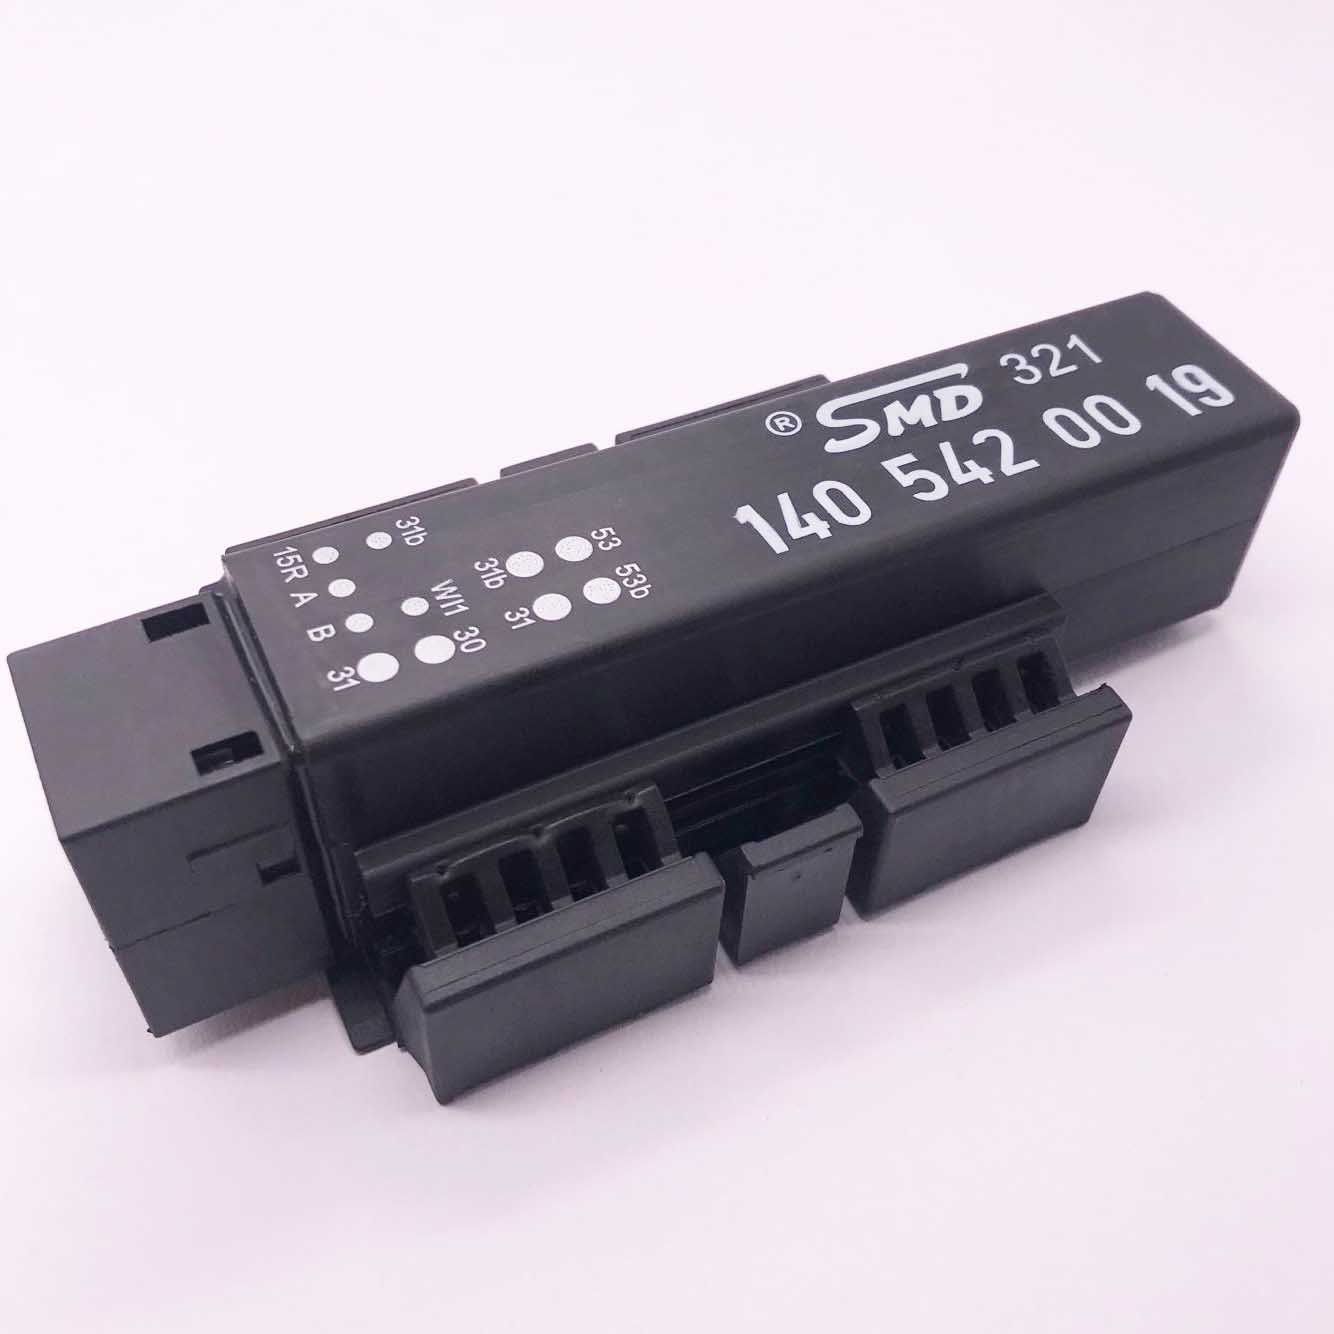 SMD car accessories Wiper Motor Control Relay Module 1405420019 140 542 00 19 for <font><b>Mercedes</b></font> Benz 1992-1999 Two year warranty image